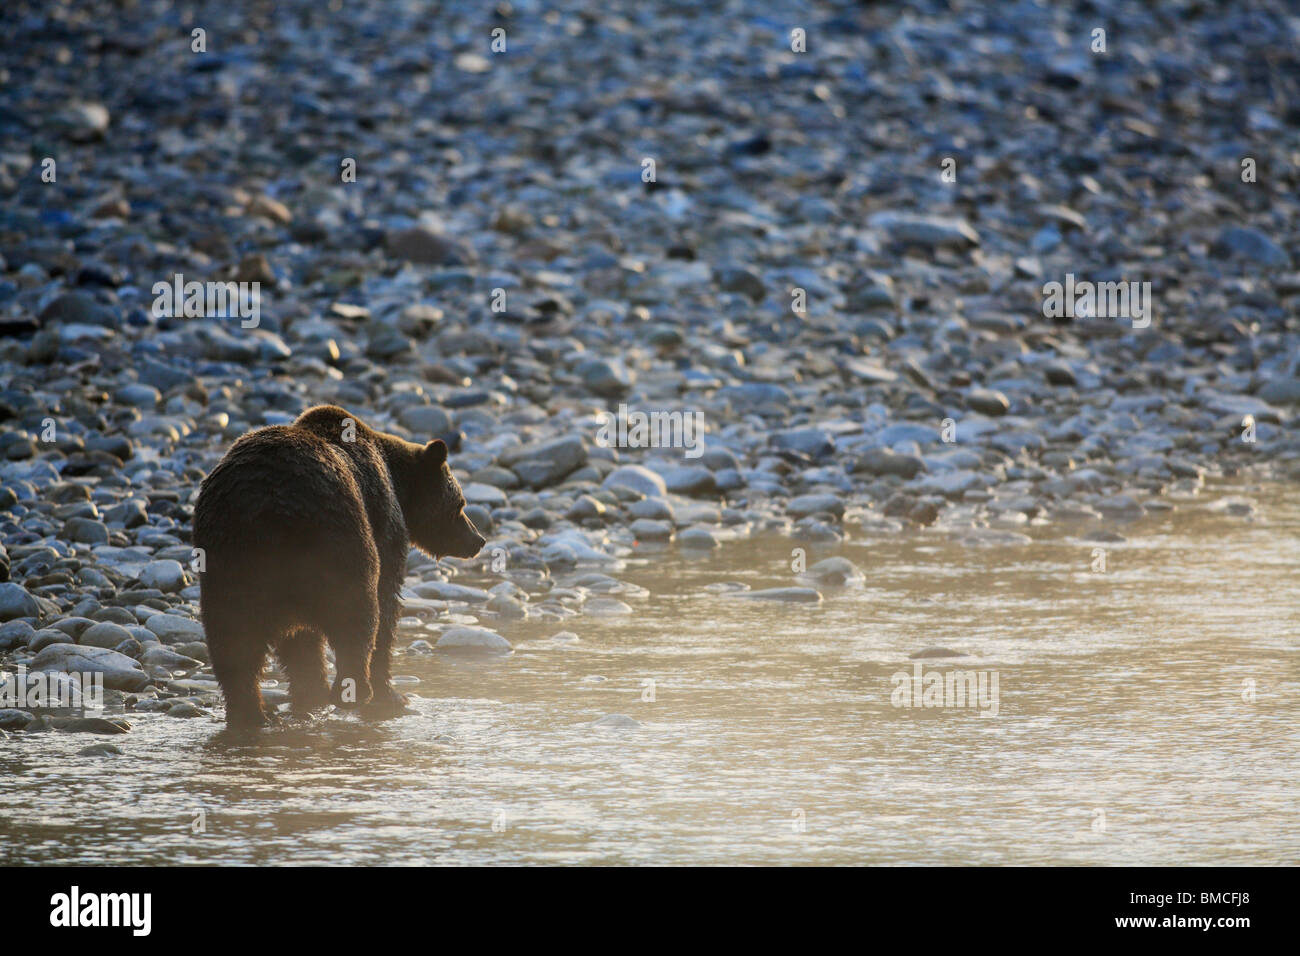 Grizzly bear walking - photo#41